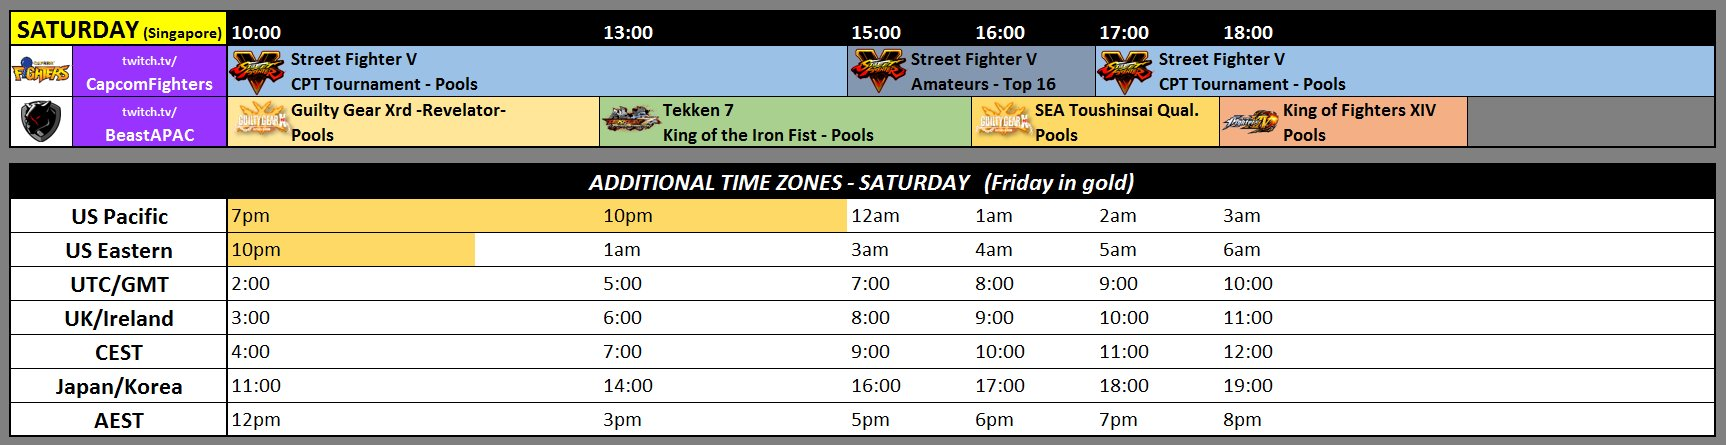 South East Asia Major 2016 Schedule 2 out of 3 image gallery